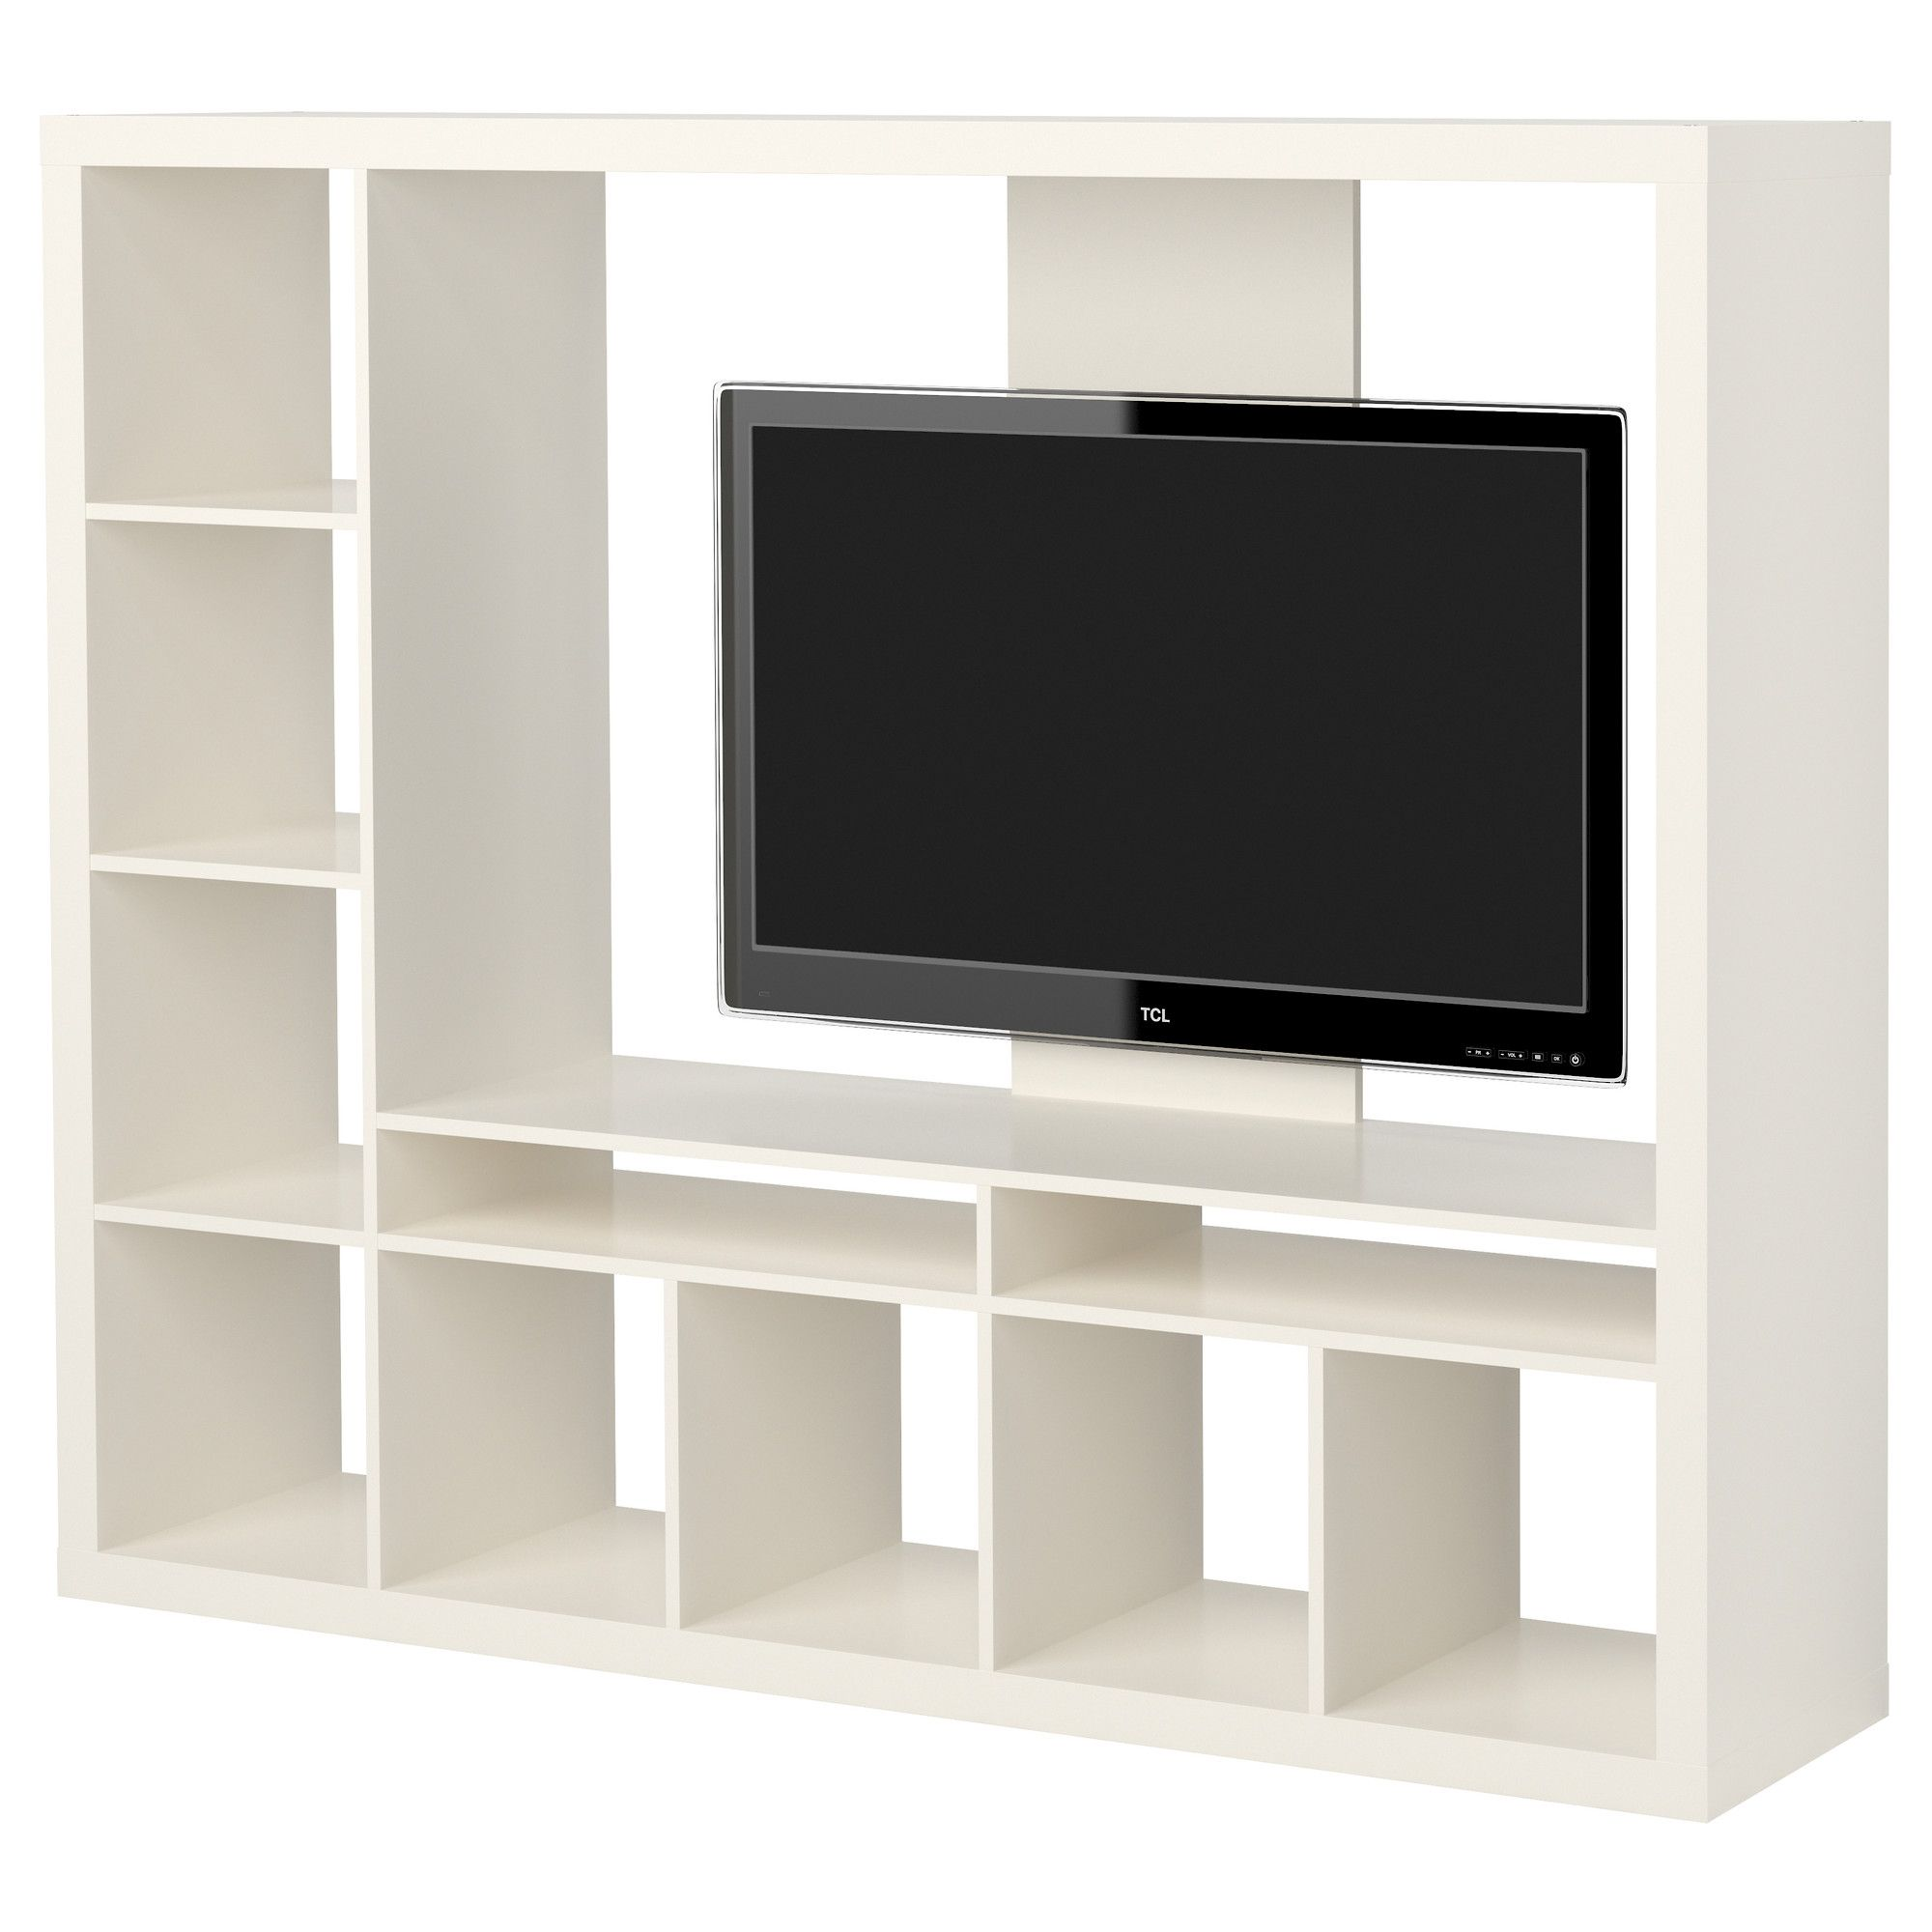 expedit meuble tv blanc ikea s jour pinterest. Black Bedroom Furniture Sets. Home Design Ideas